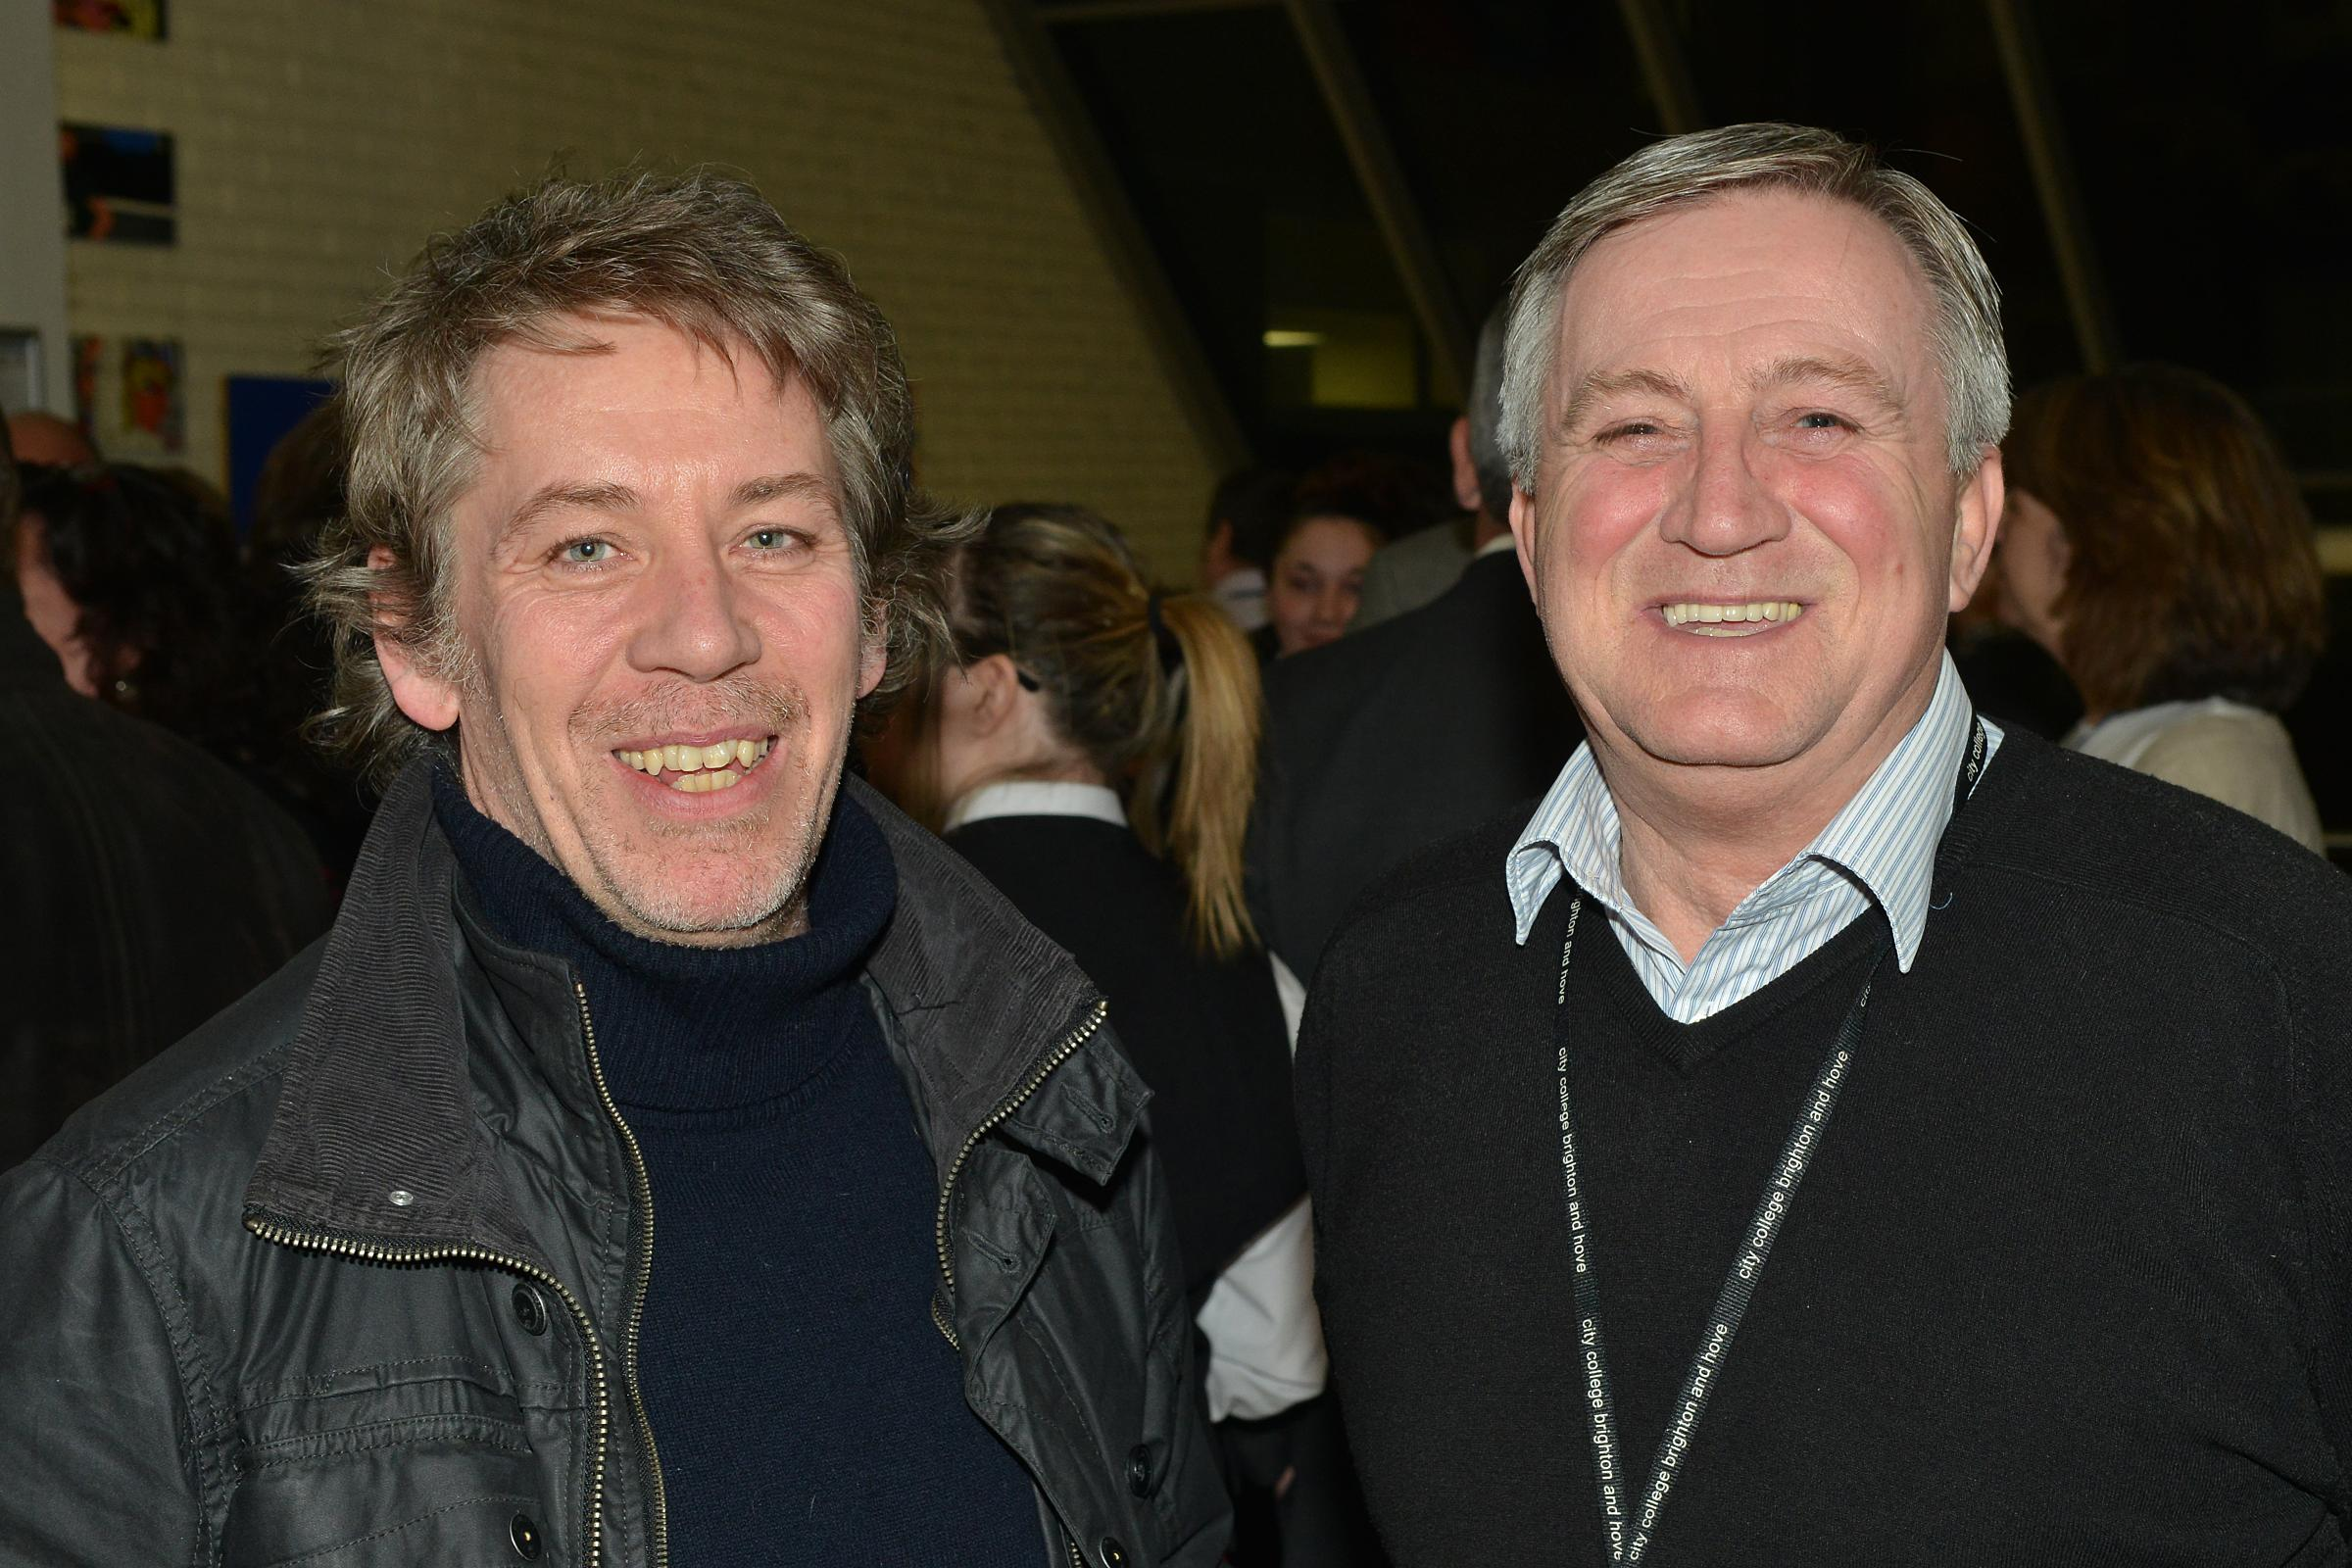 Tom Dowds (right) with Paul Brewster